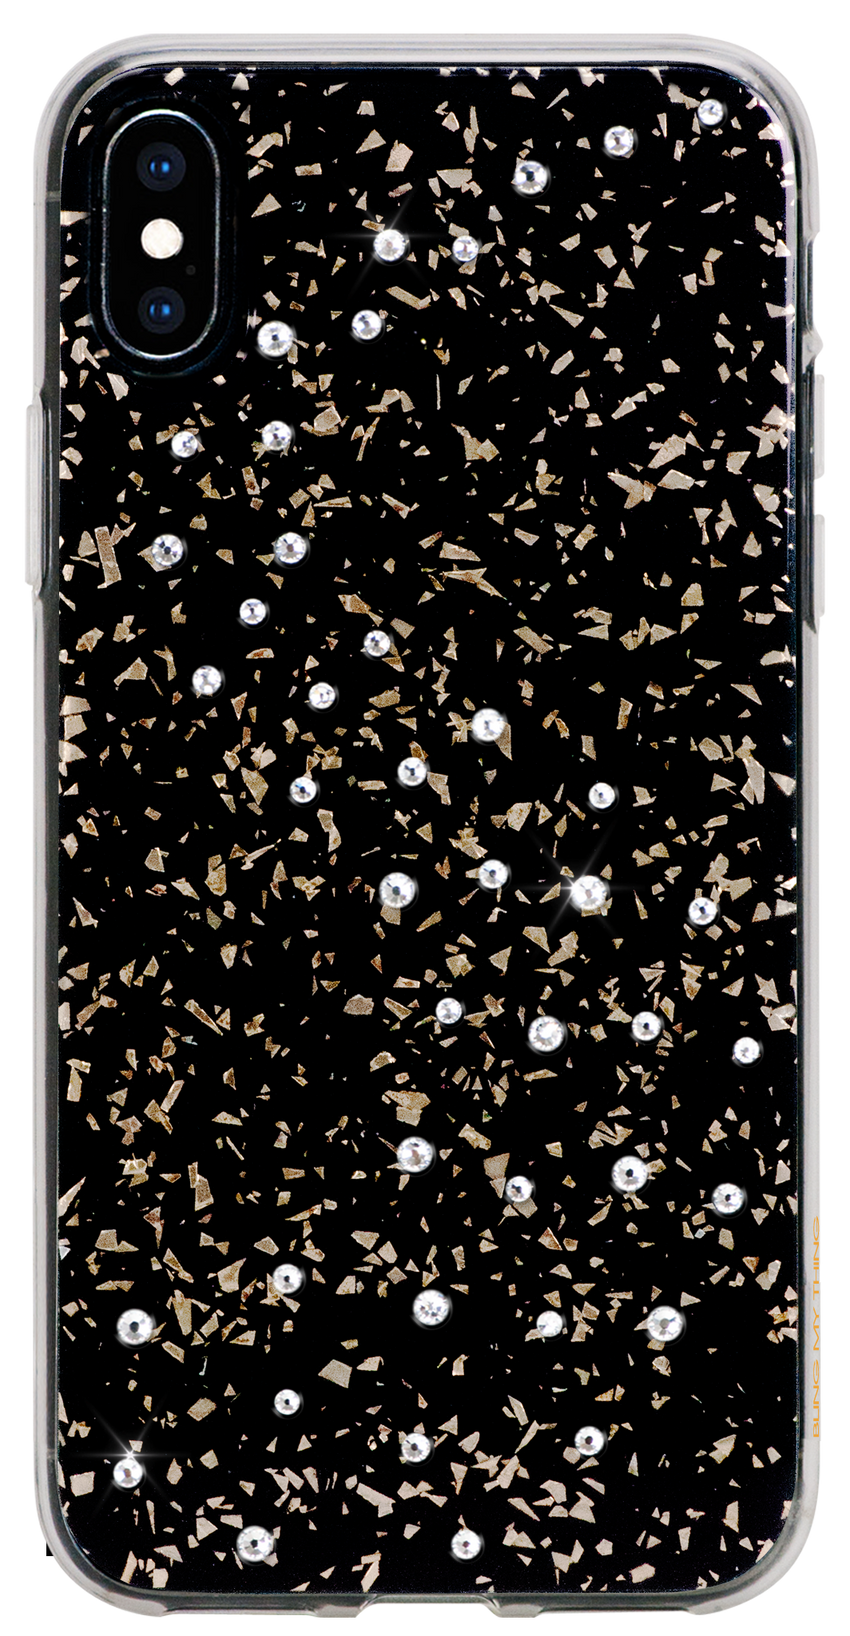 For iPhone XS Max : MILKY WAY ᛫ BLACK GALAXY ᛫ a cover with Swarovski Crystals - Bling My Thing